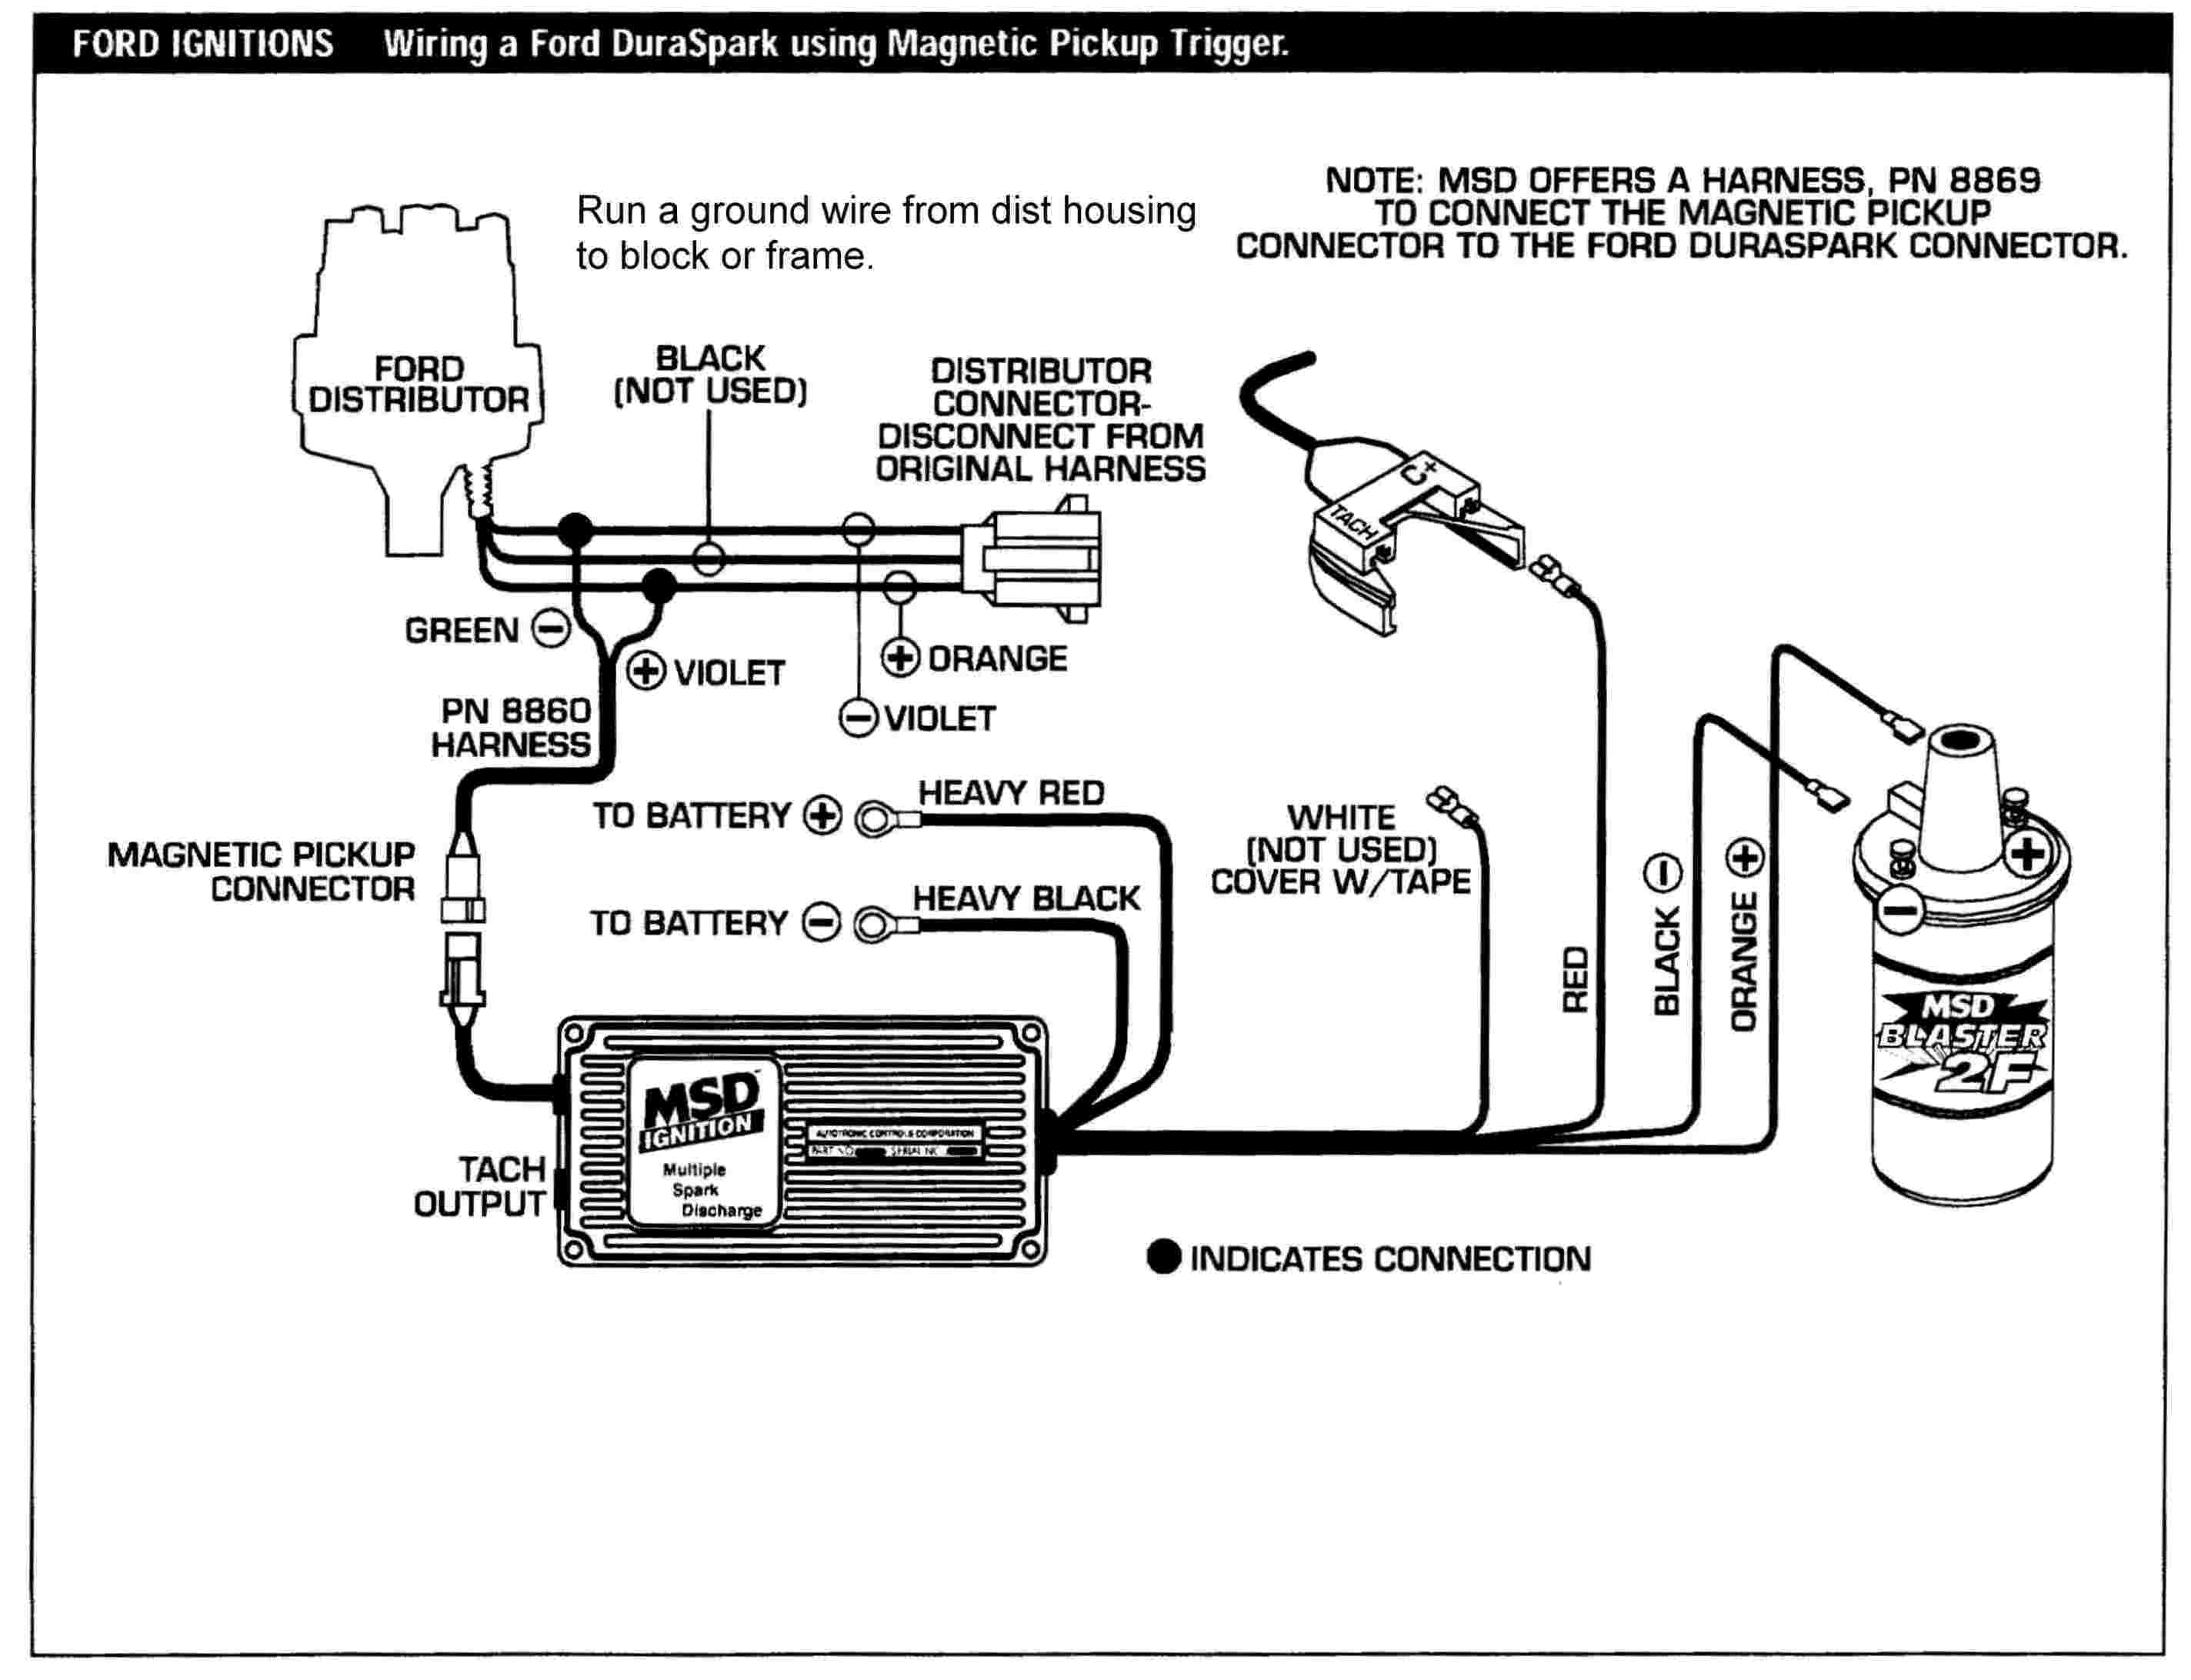 ford hei wiring diagram msd ignition wiring diagram 6a images ford coil wiring diagram ignition wiring diagram further msd 6al